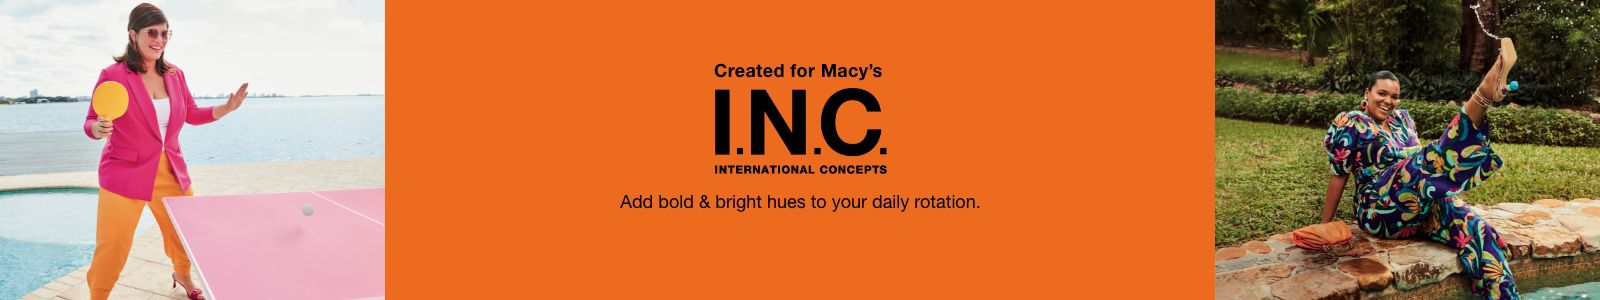 Created for Macy's, I.N.C International Concept